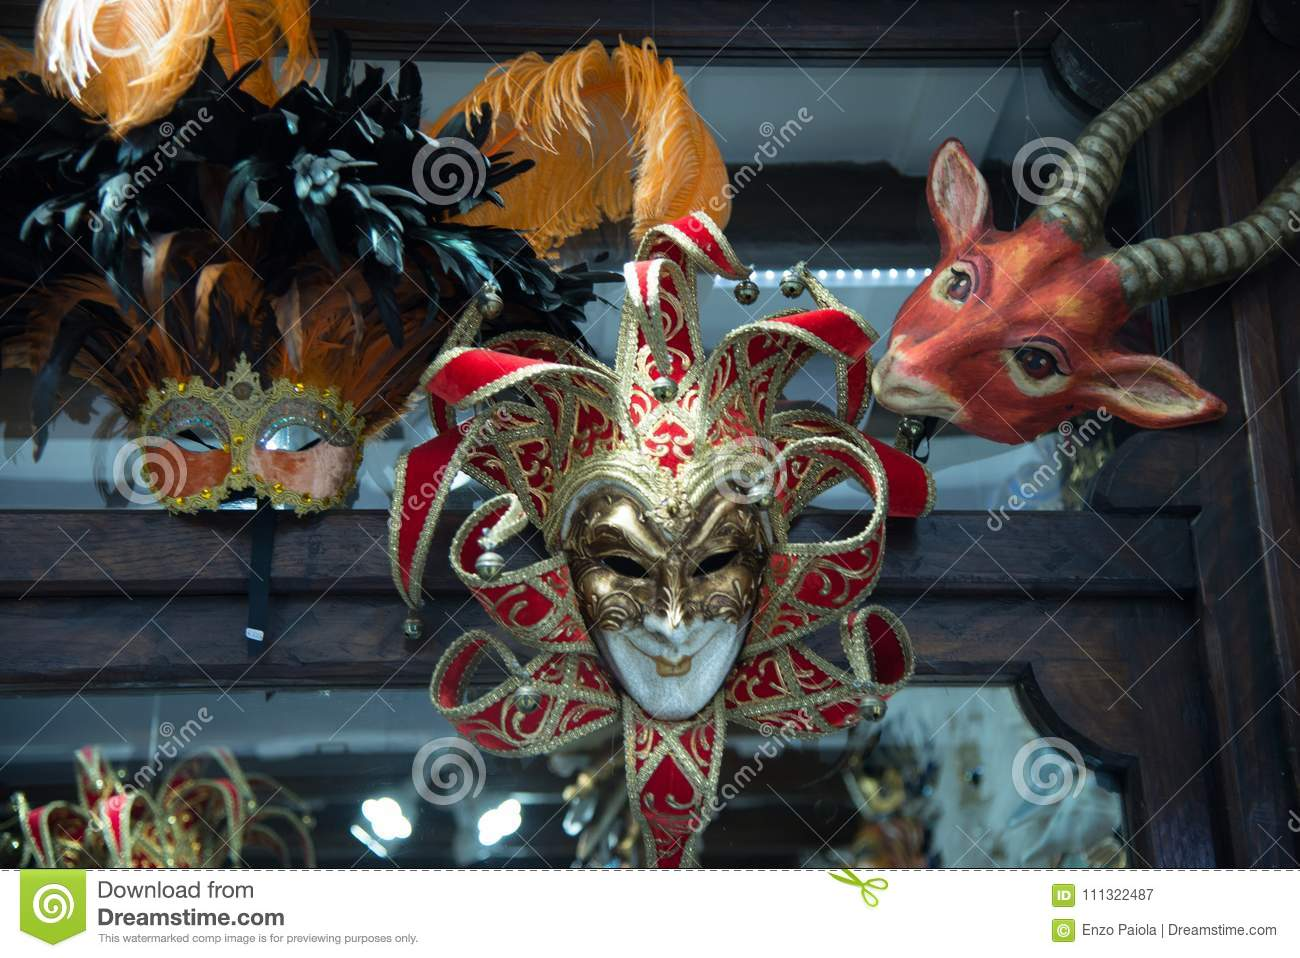 Traditional venetian mask in store on street, Italy